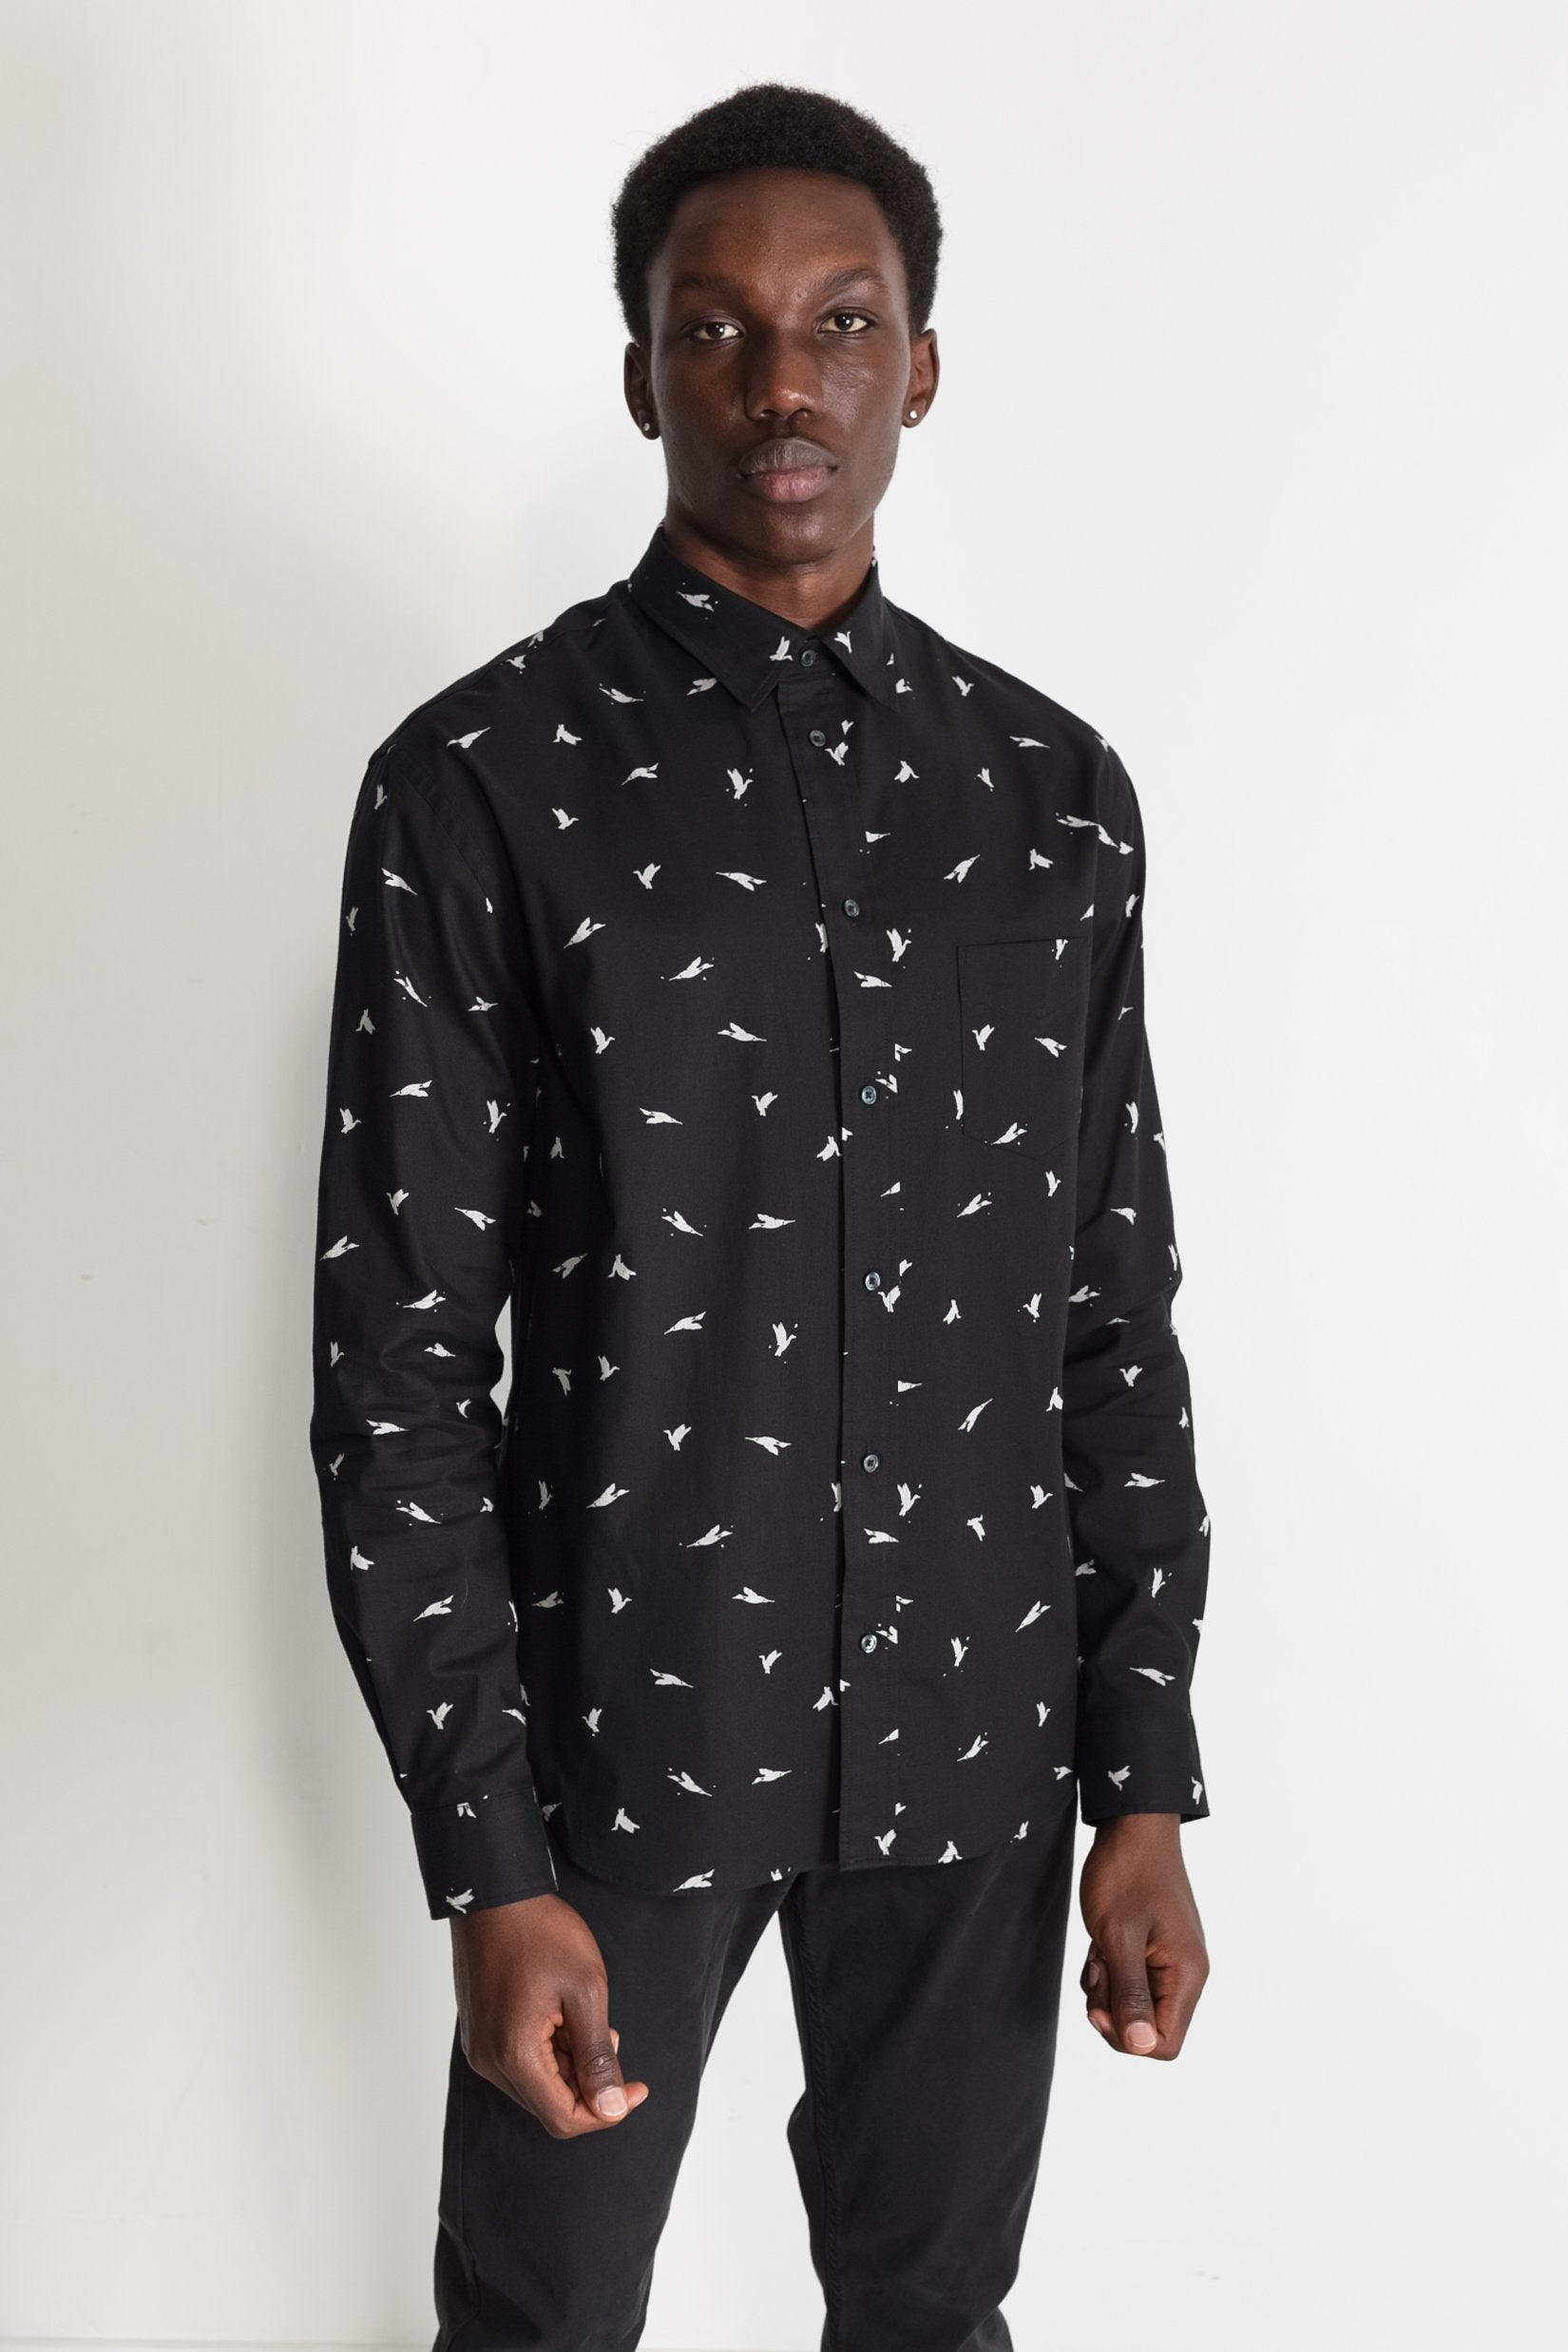 Japanese Bird Print in Black 01